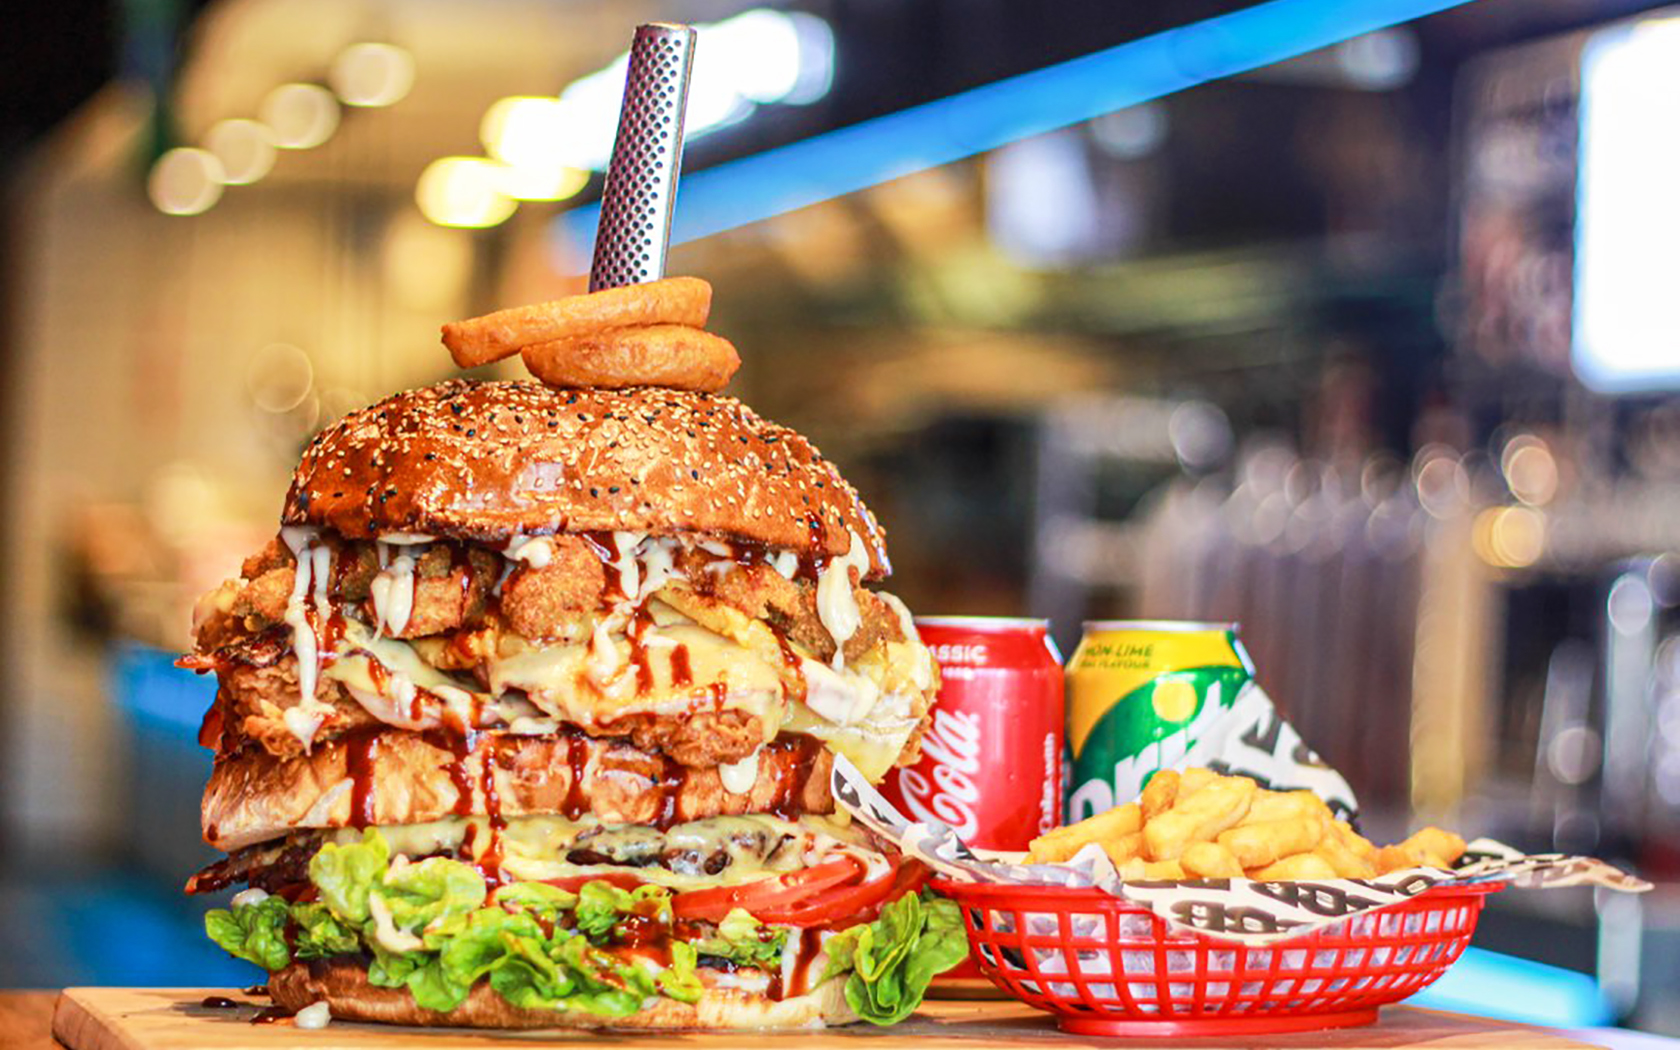 Beer And Burger Bar Could You Finish The Don 2 0 Food Challenge